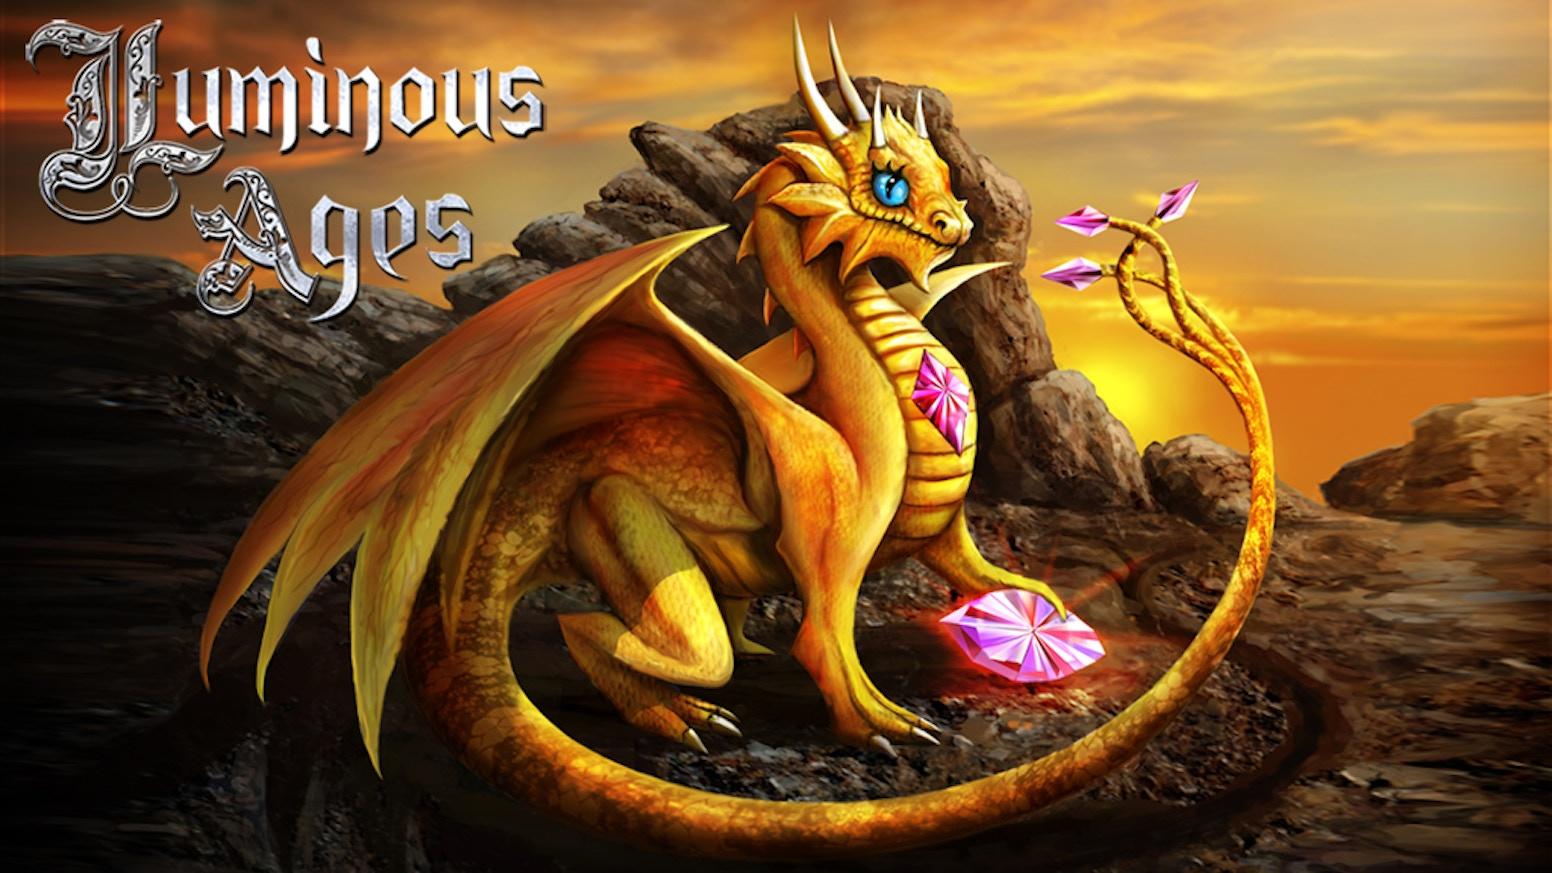 Luminous Ages is a fantasy comic with Dragons of all kinds and Wizards from many cultural backgrounds. Be in the comic & comic artbook.